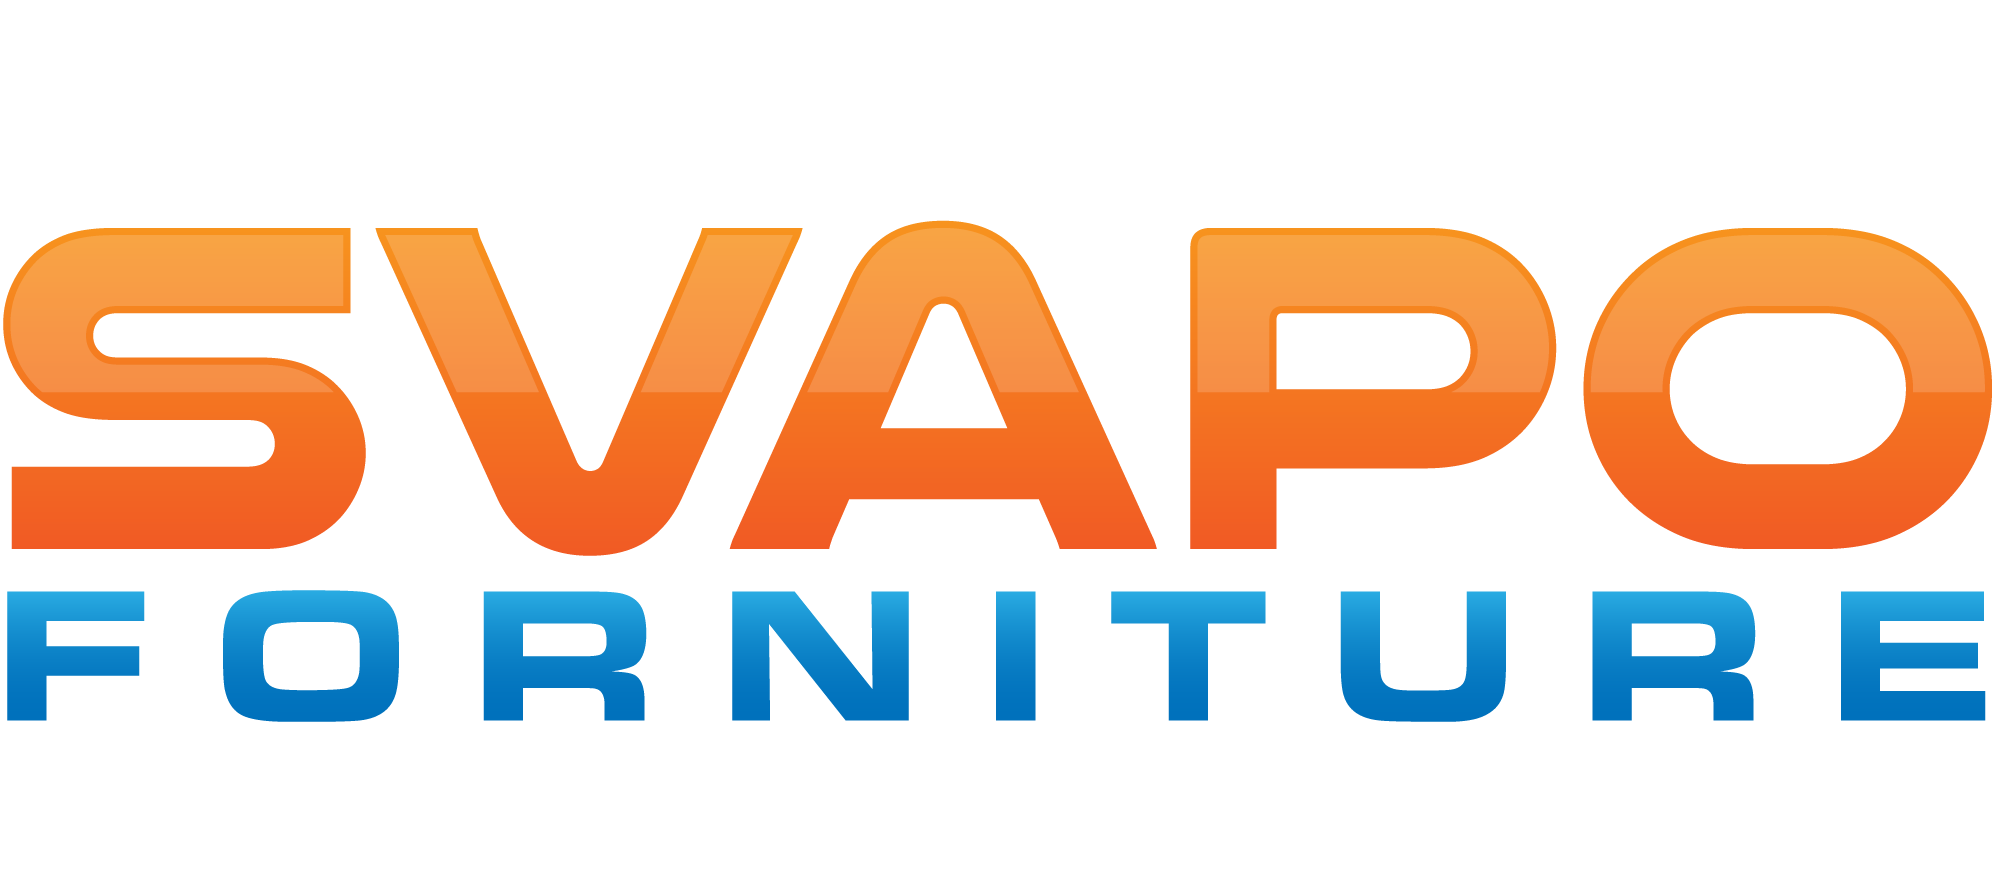 Svapoforniture